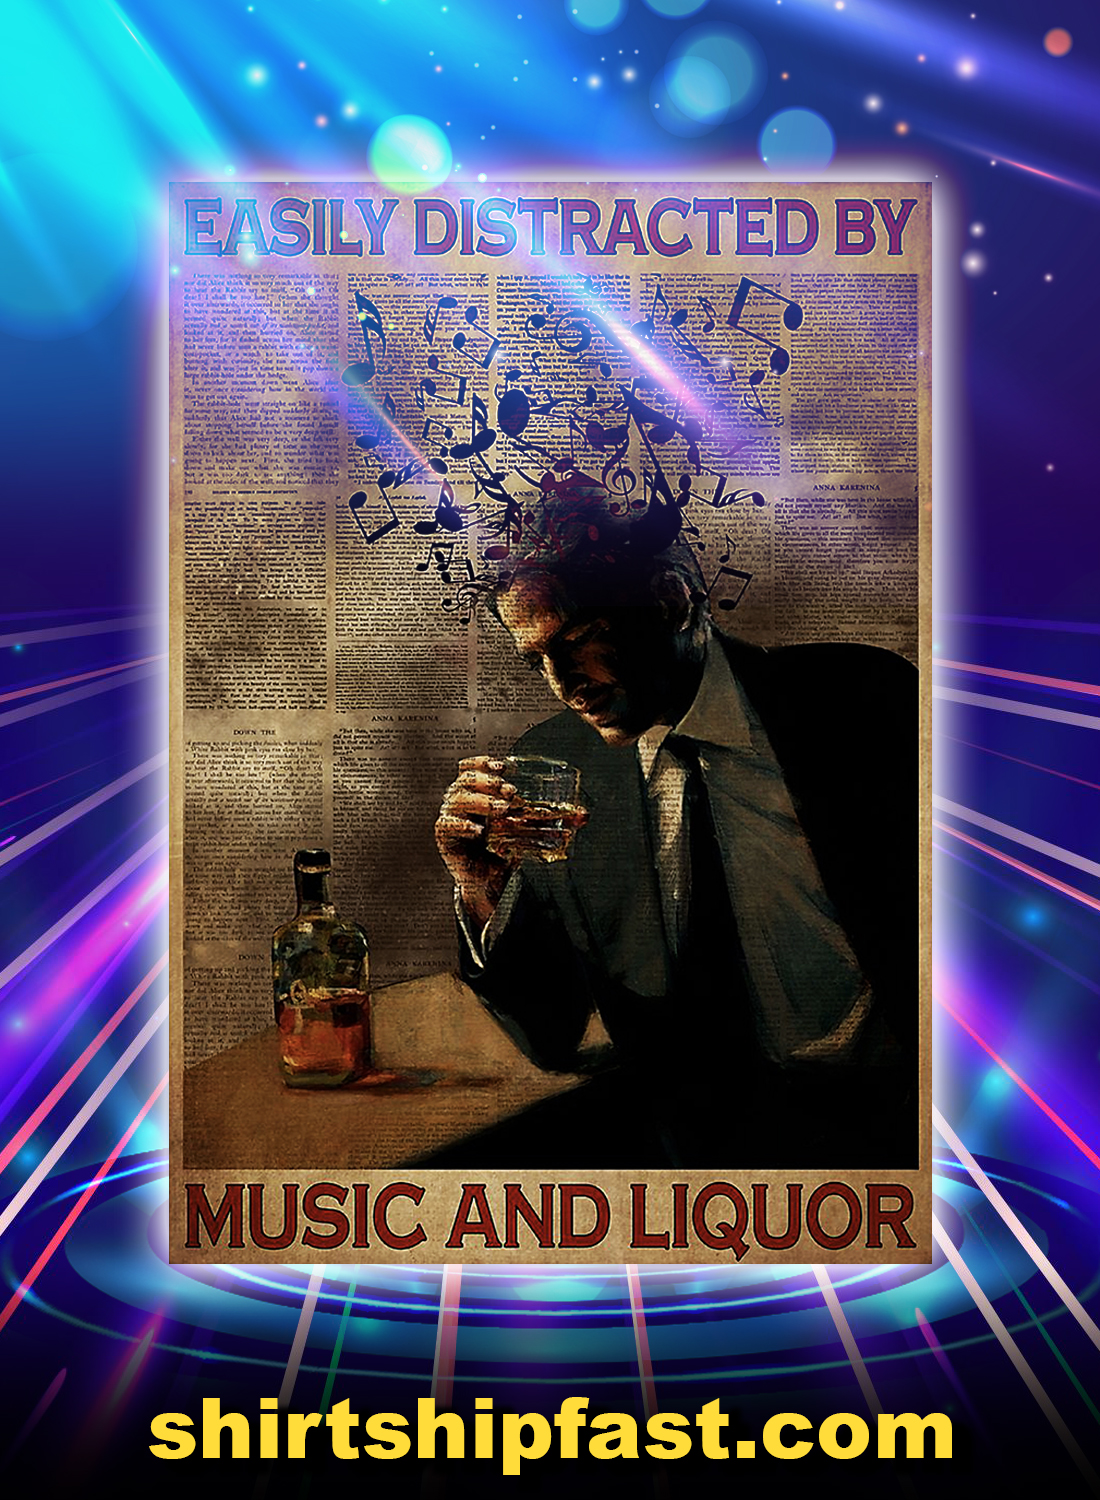 Man easily distracted by music and liquor poster - A4